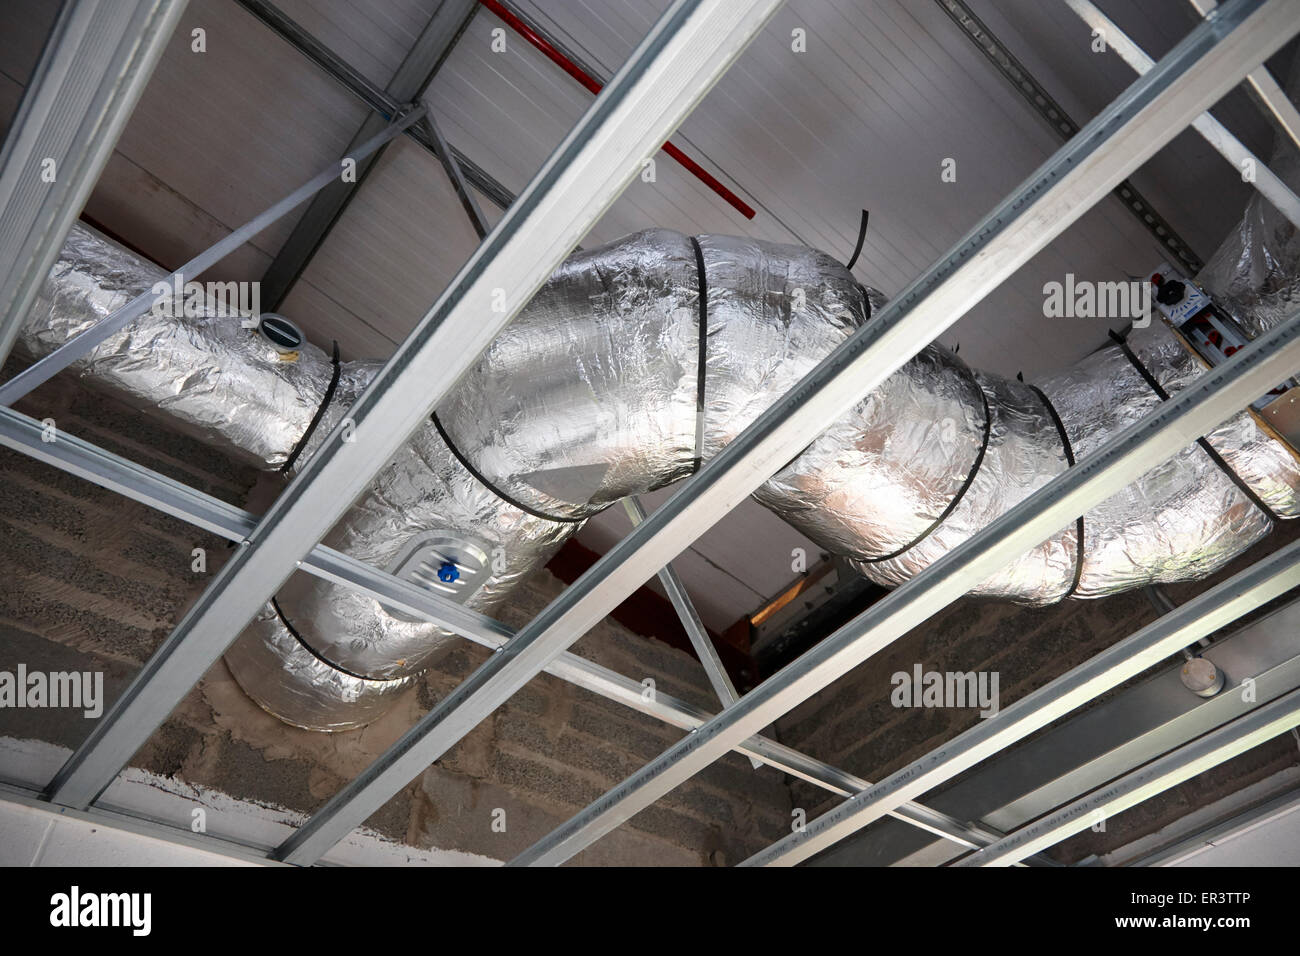 Air Conditioning Pipes Stock Photos & Air Conditioning Pipes Stock ...